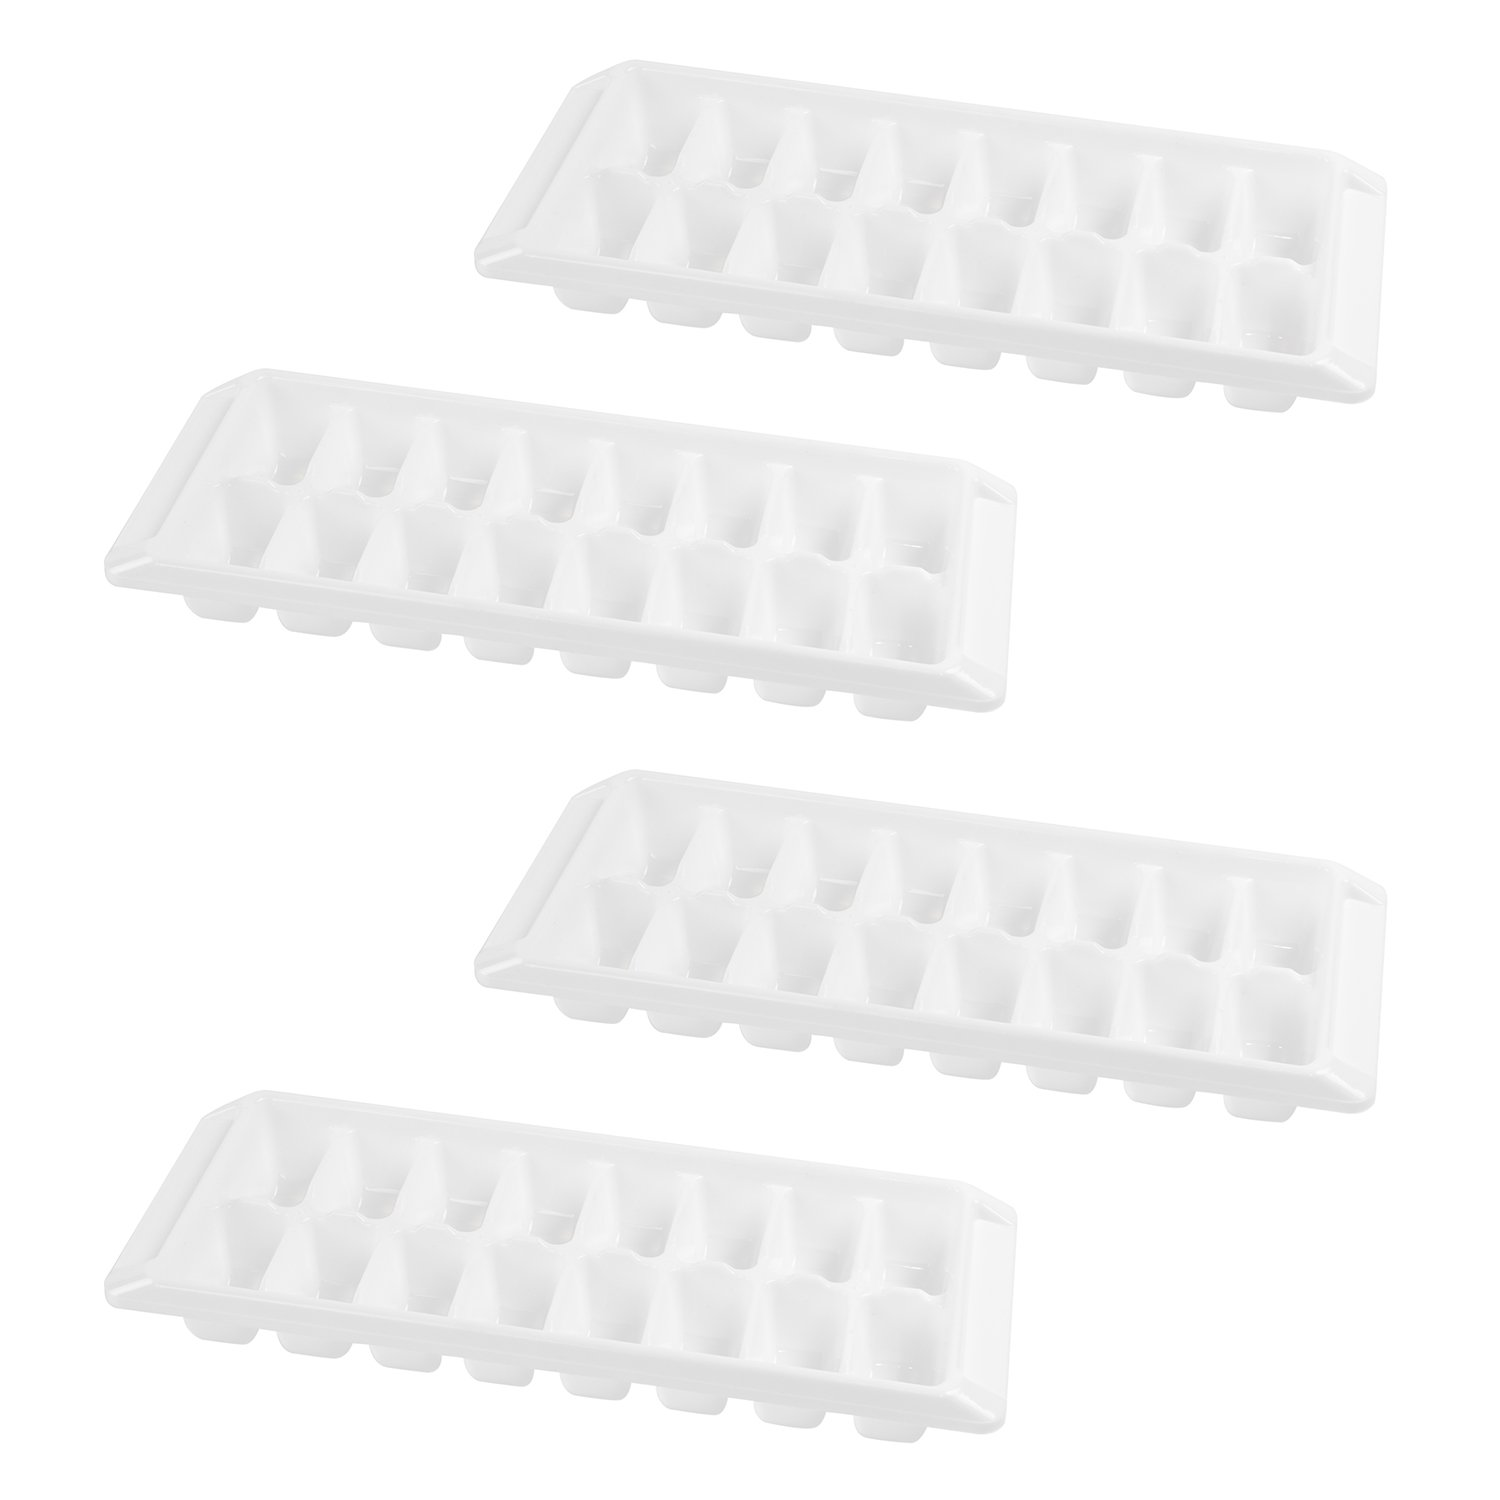 White Ice Cube Trays Easy Release Stackable Flexible Durable Non-Stick Freezer Treats Molds (4 Pack, 16 Cubes)